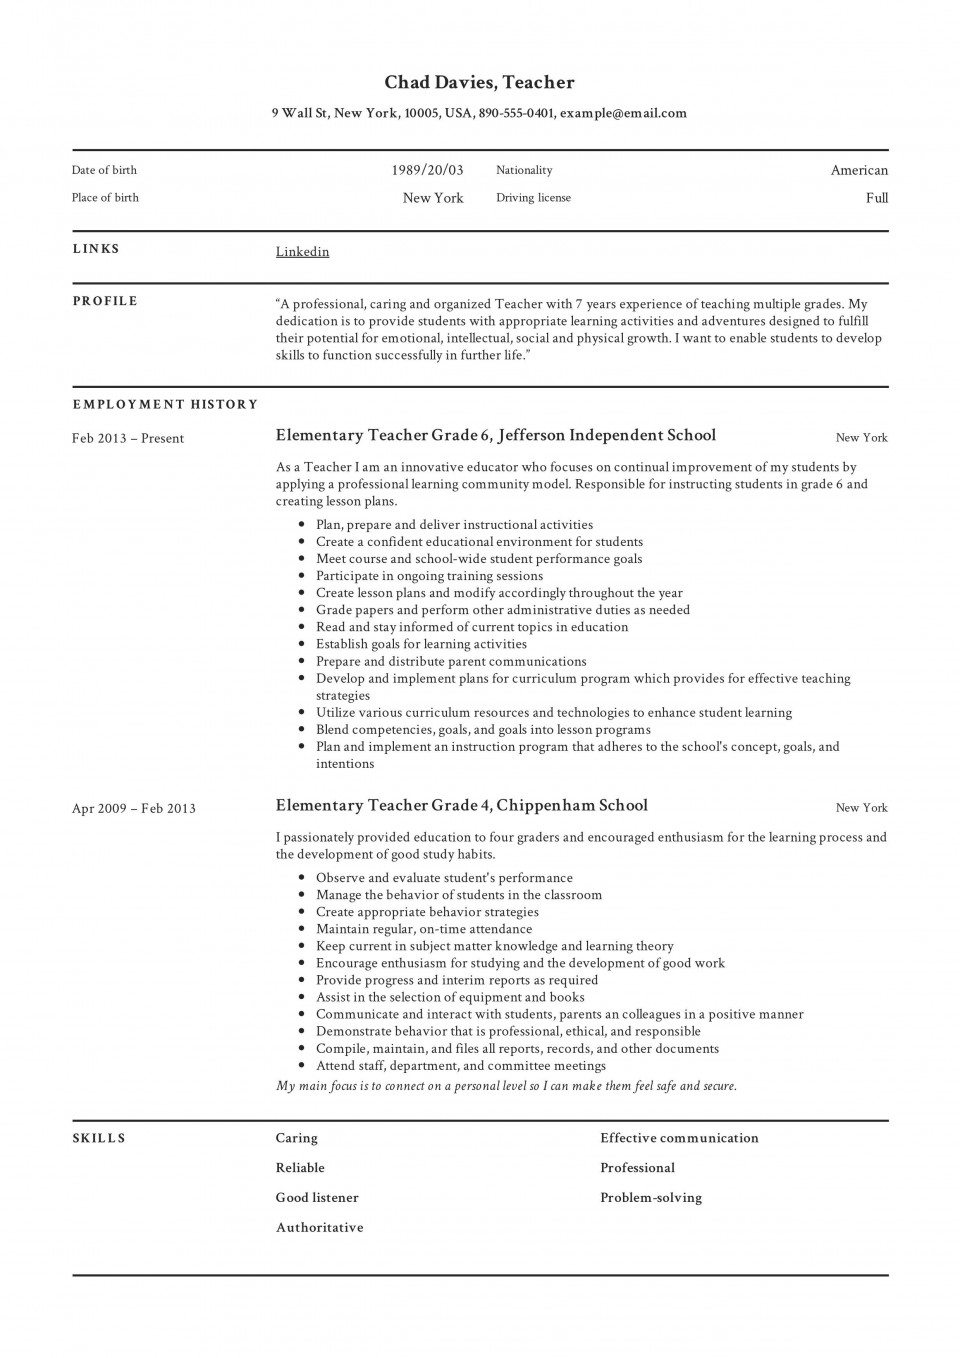 003 Frightening Good Resume For Teaching Job High Definition  Sample Teacher Fresher In India960